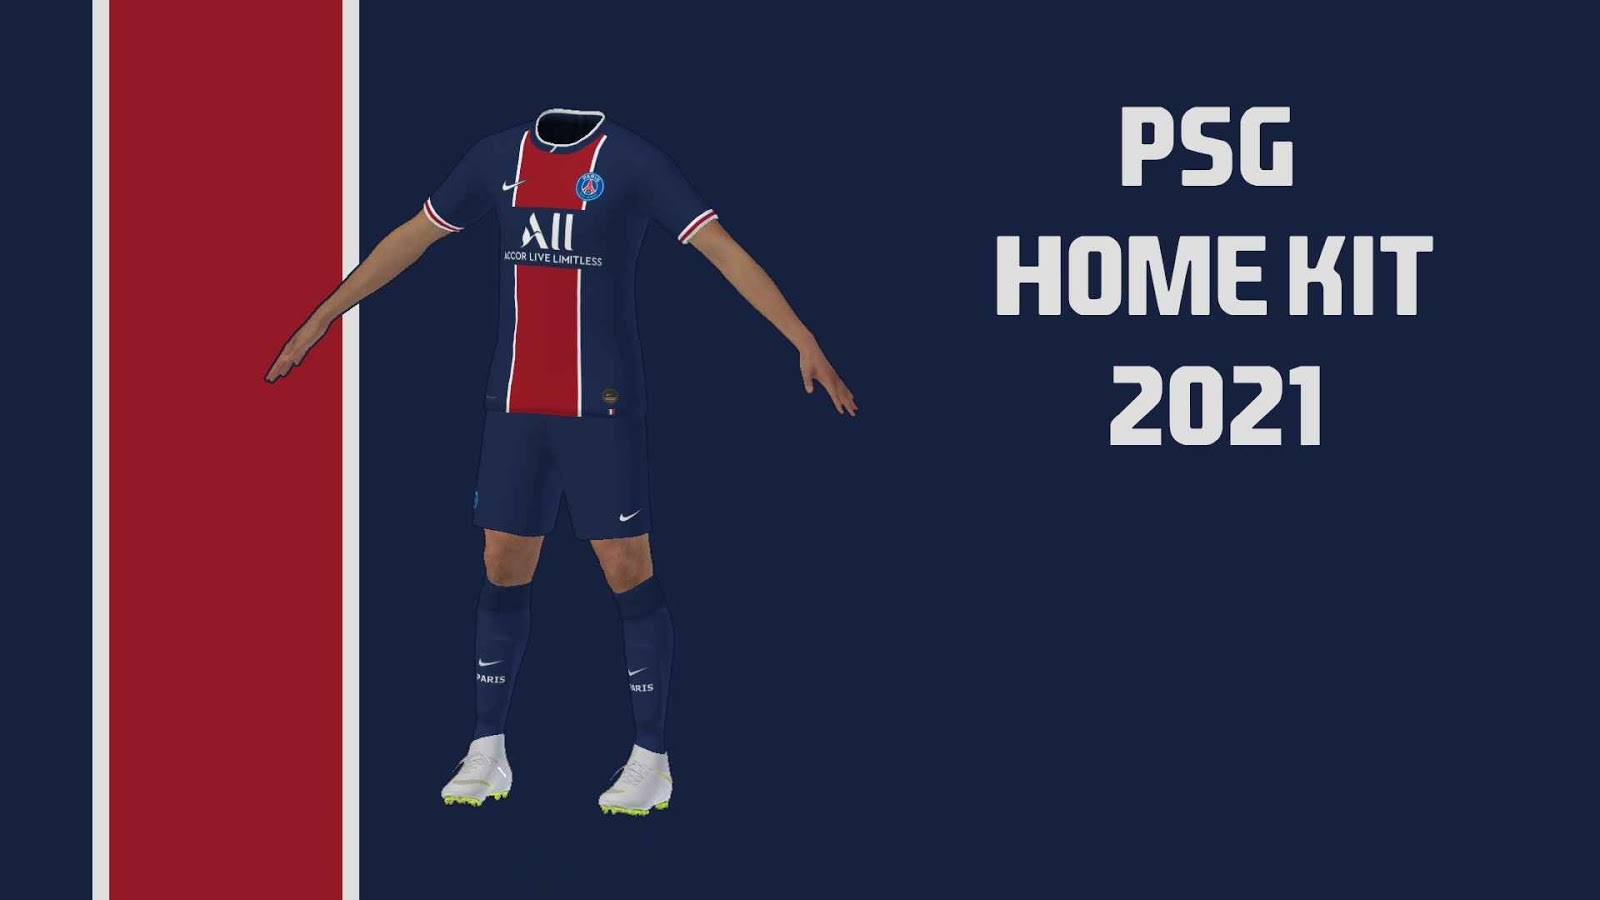 PSG Kits 2021 DLS 20 Logo Paris Saint Germain